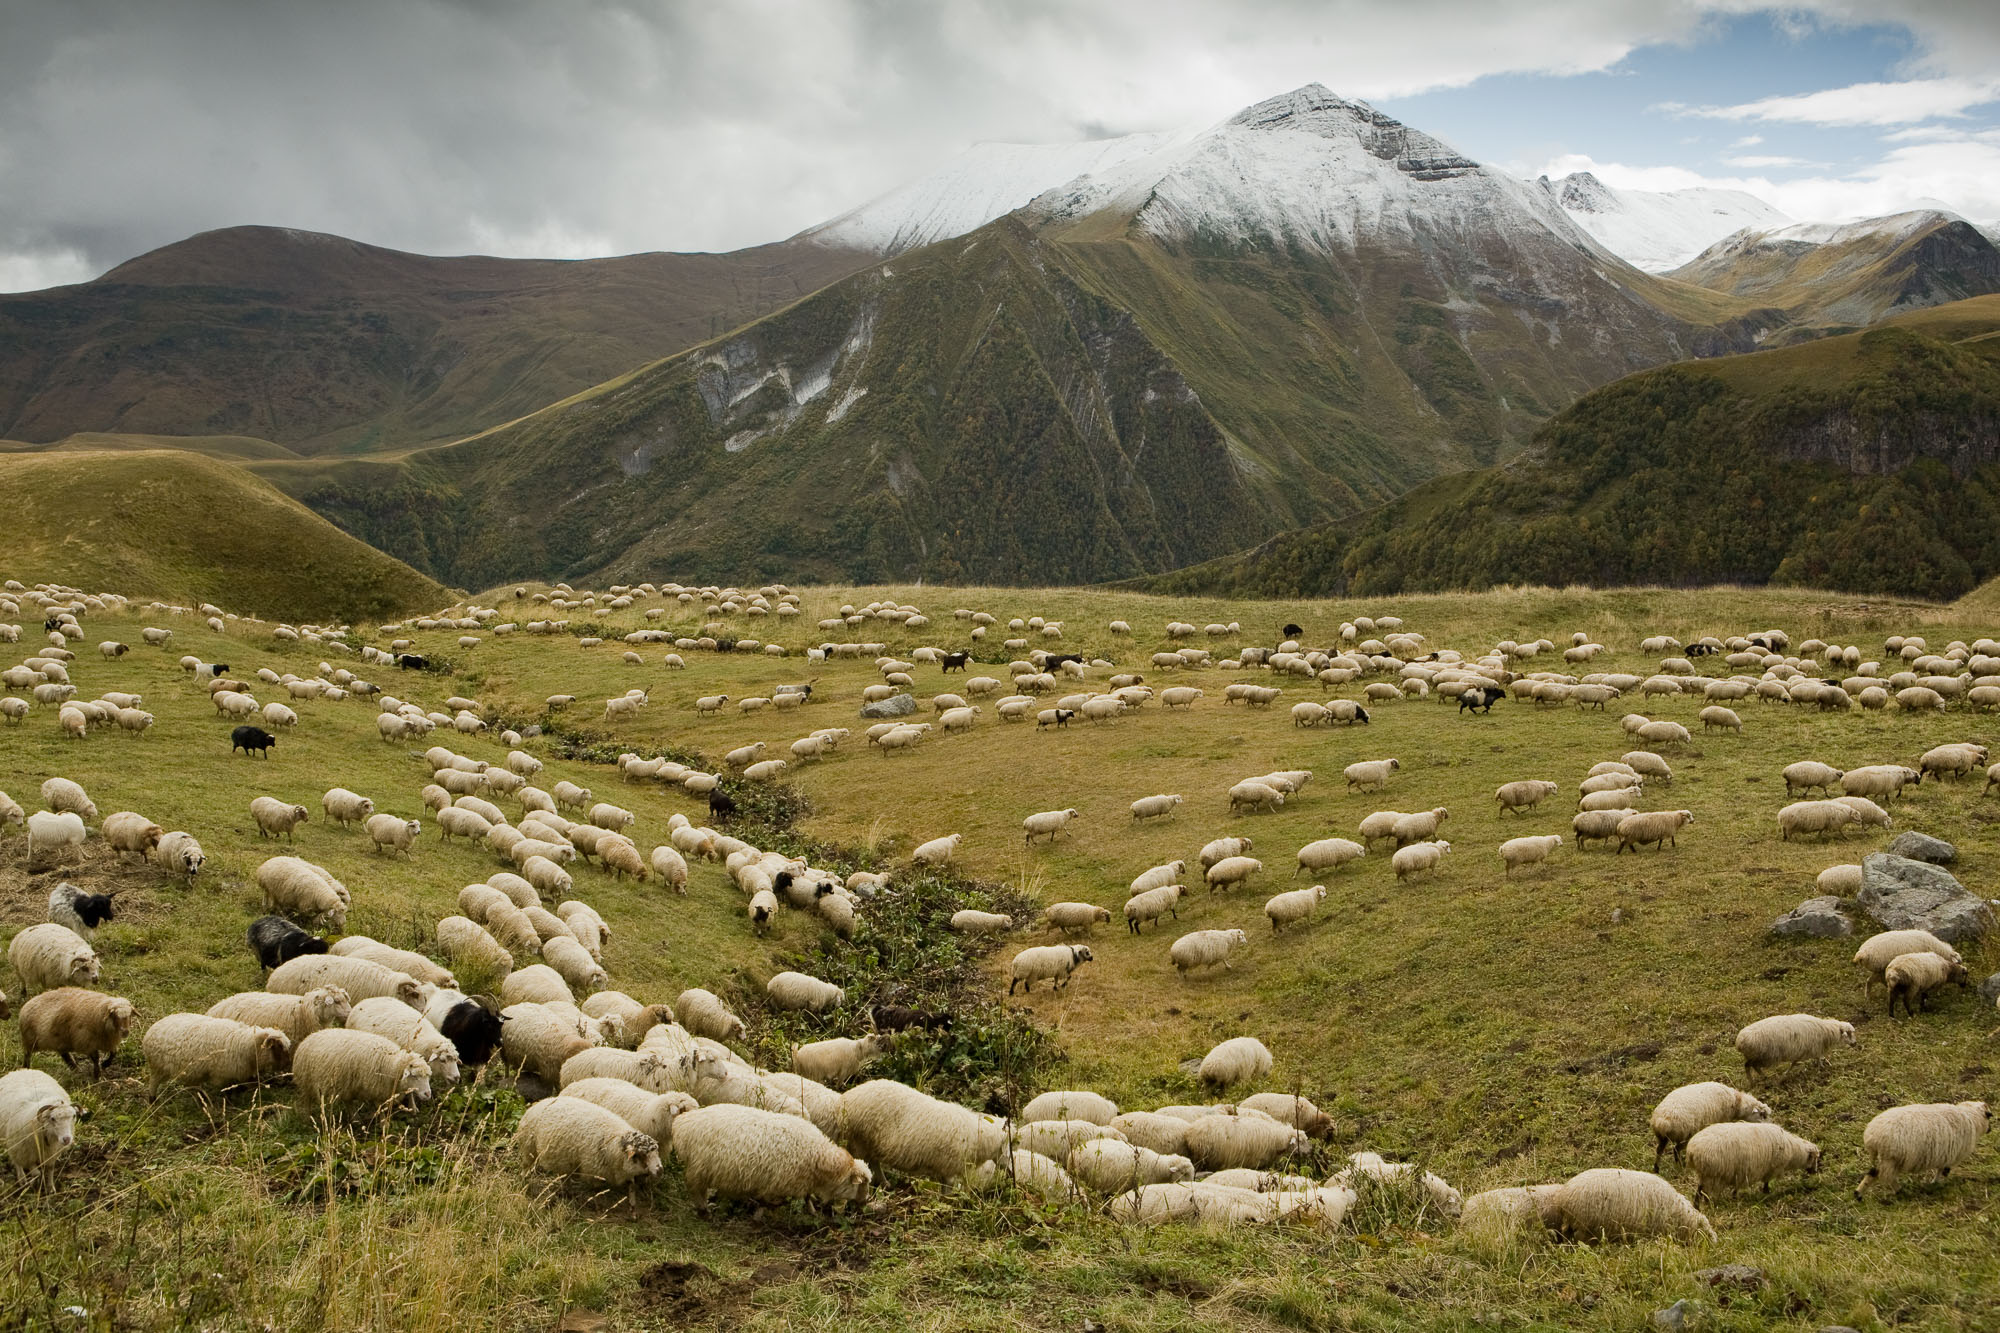 A herd of sheep graze near the snowcapped Caucausus Mountains of Georgia.